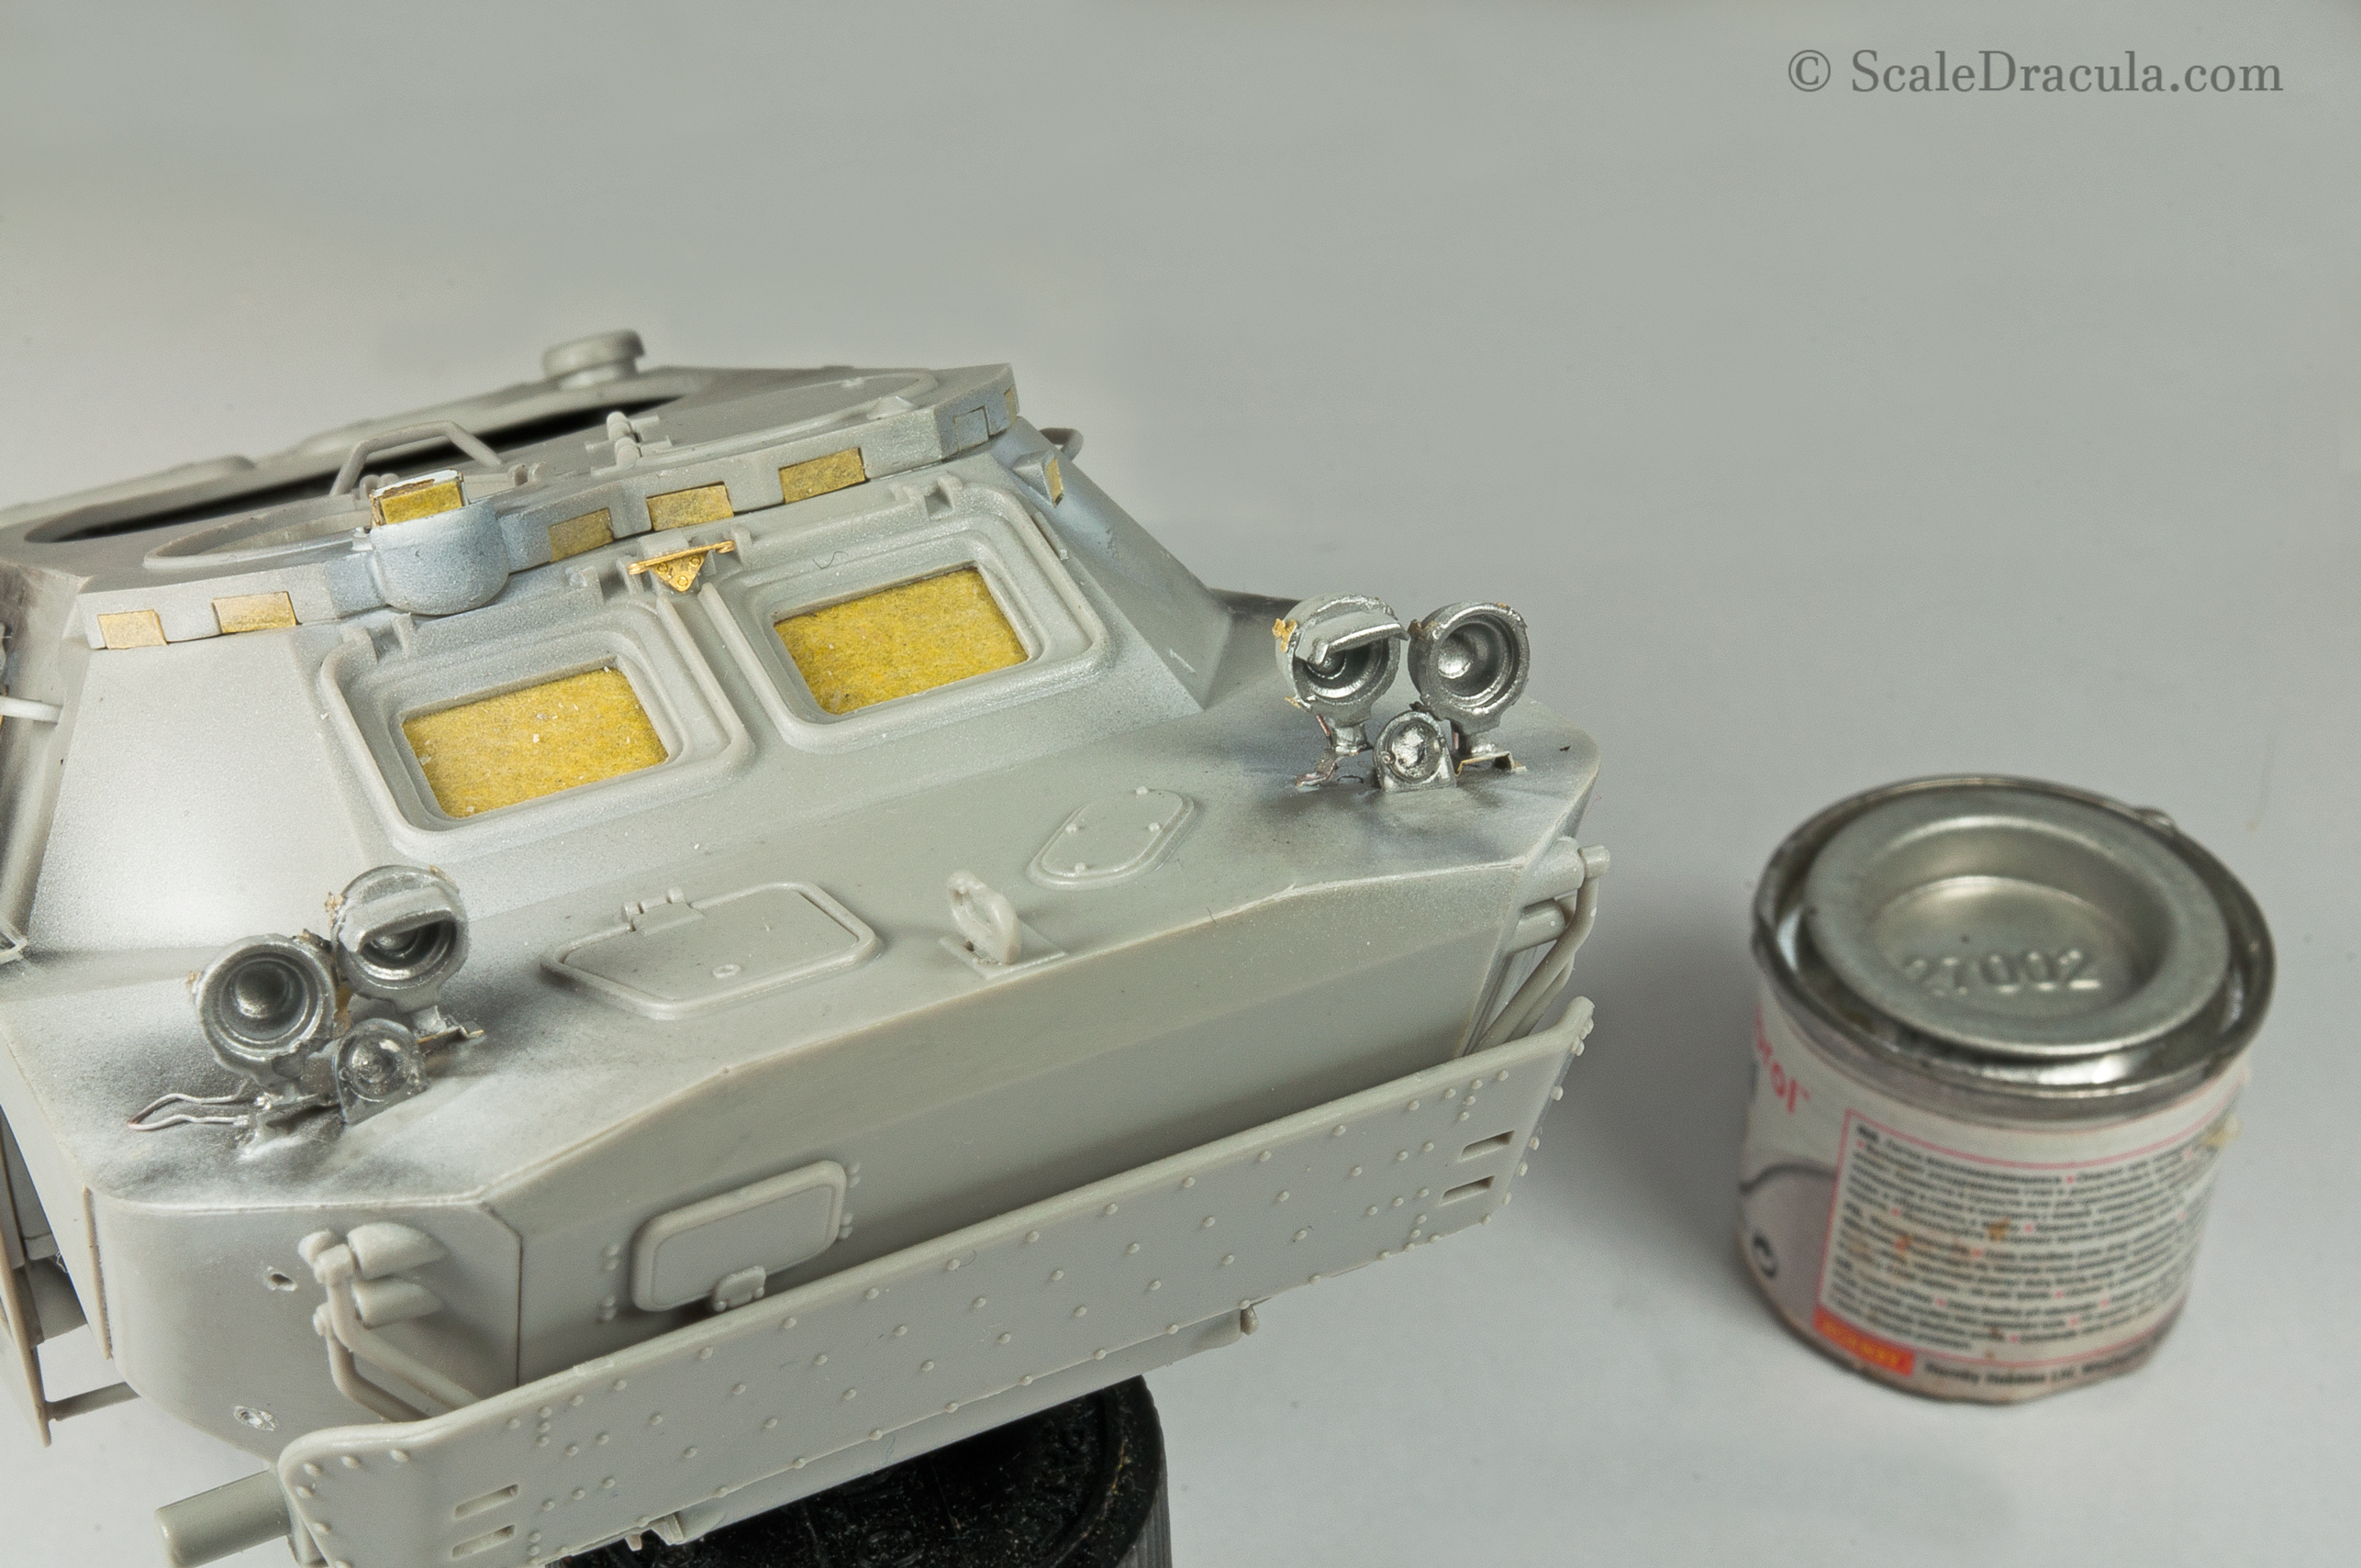 Headlight painted with Humbrol 27002, BRDM-2 by Trumpeter